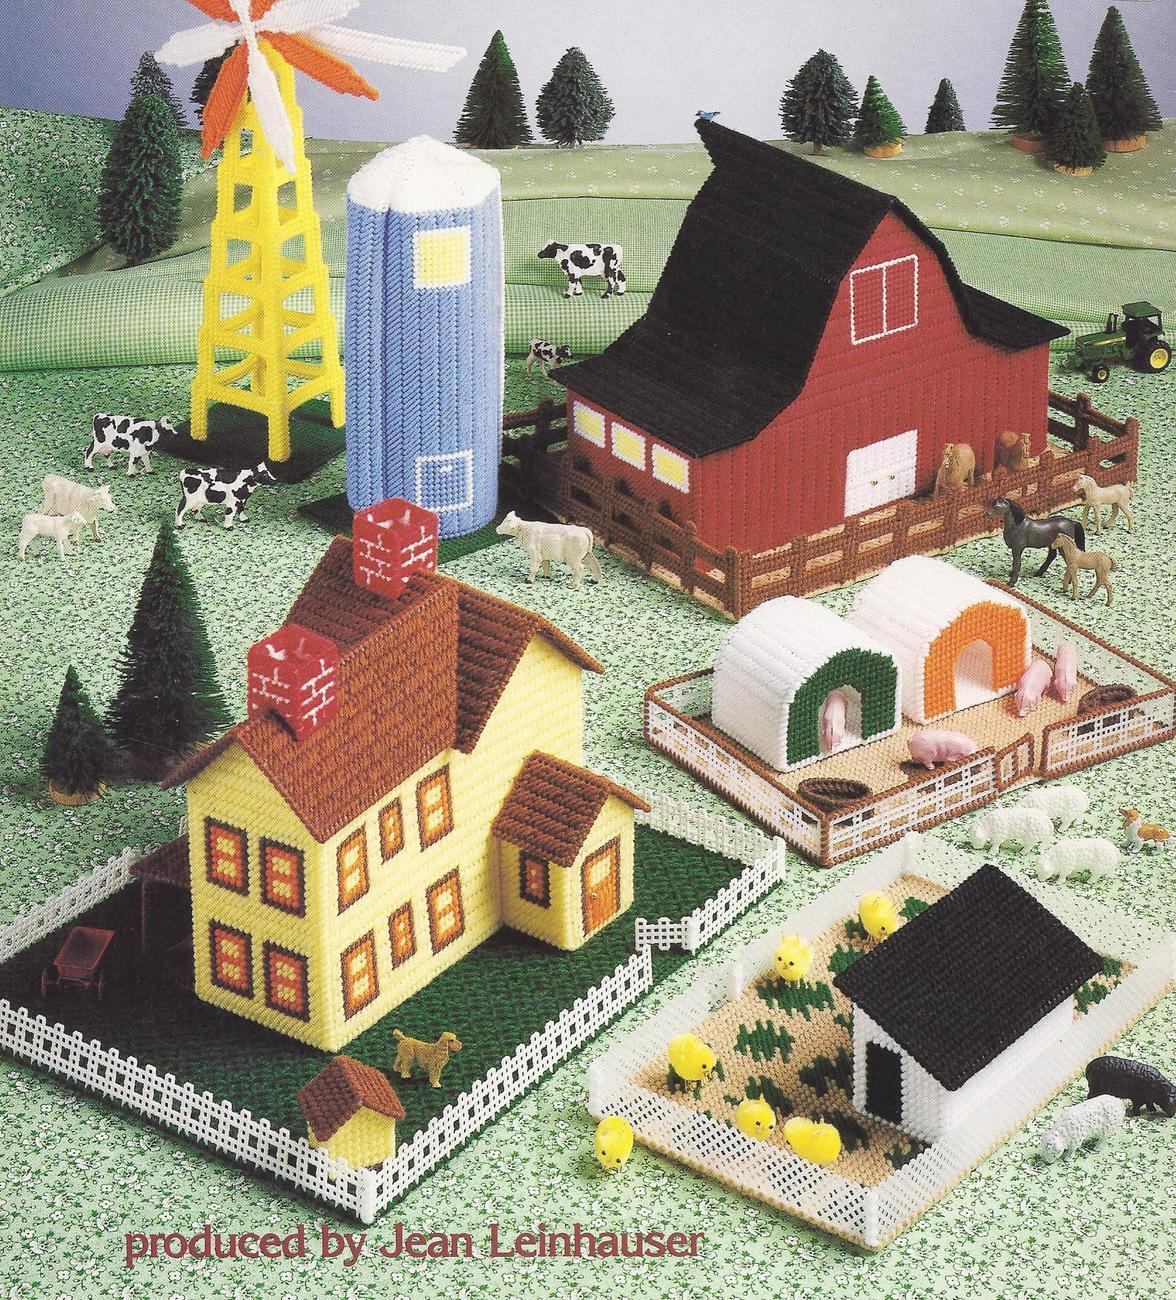 Plastic Canvas Patterns John Deer http://patternsge.net/toy-barn-patterns/